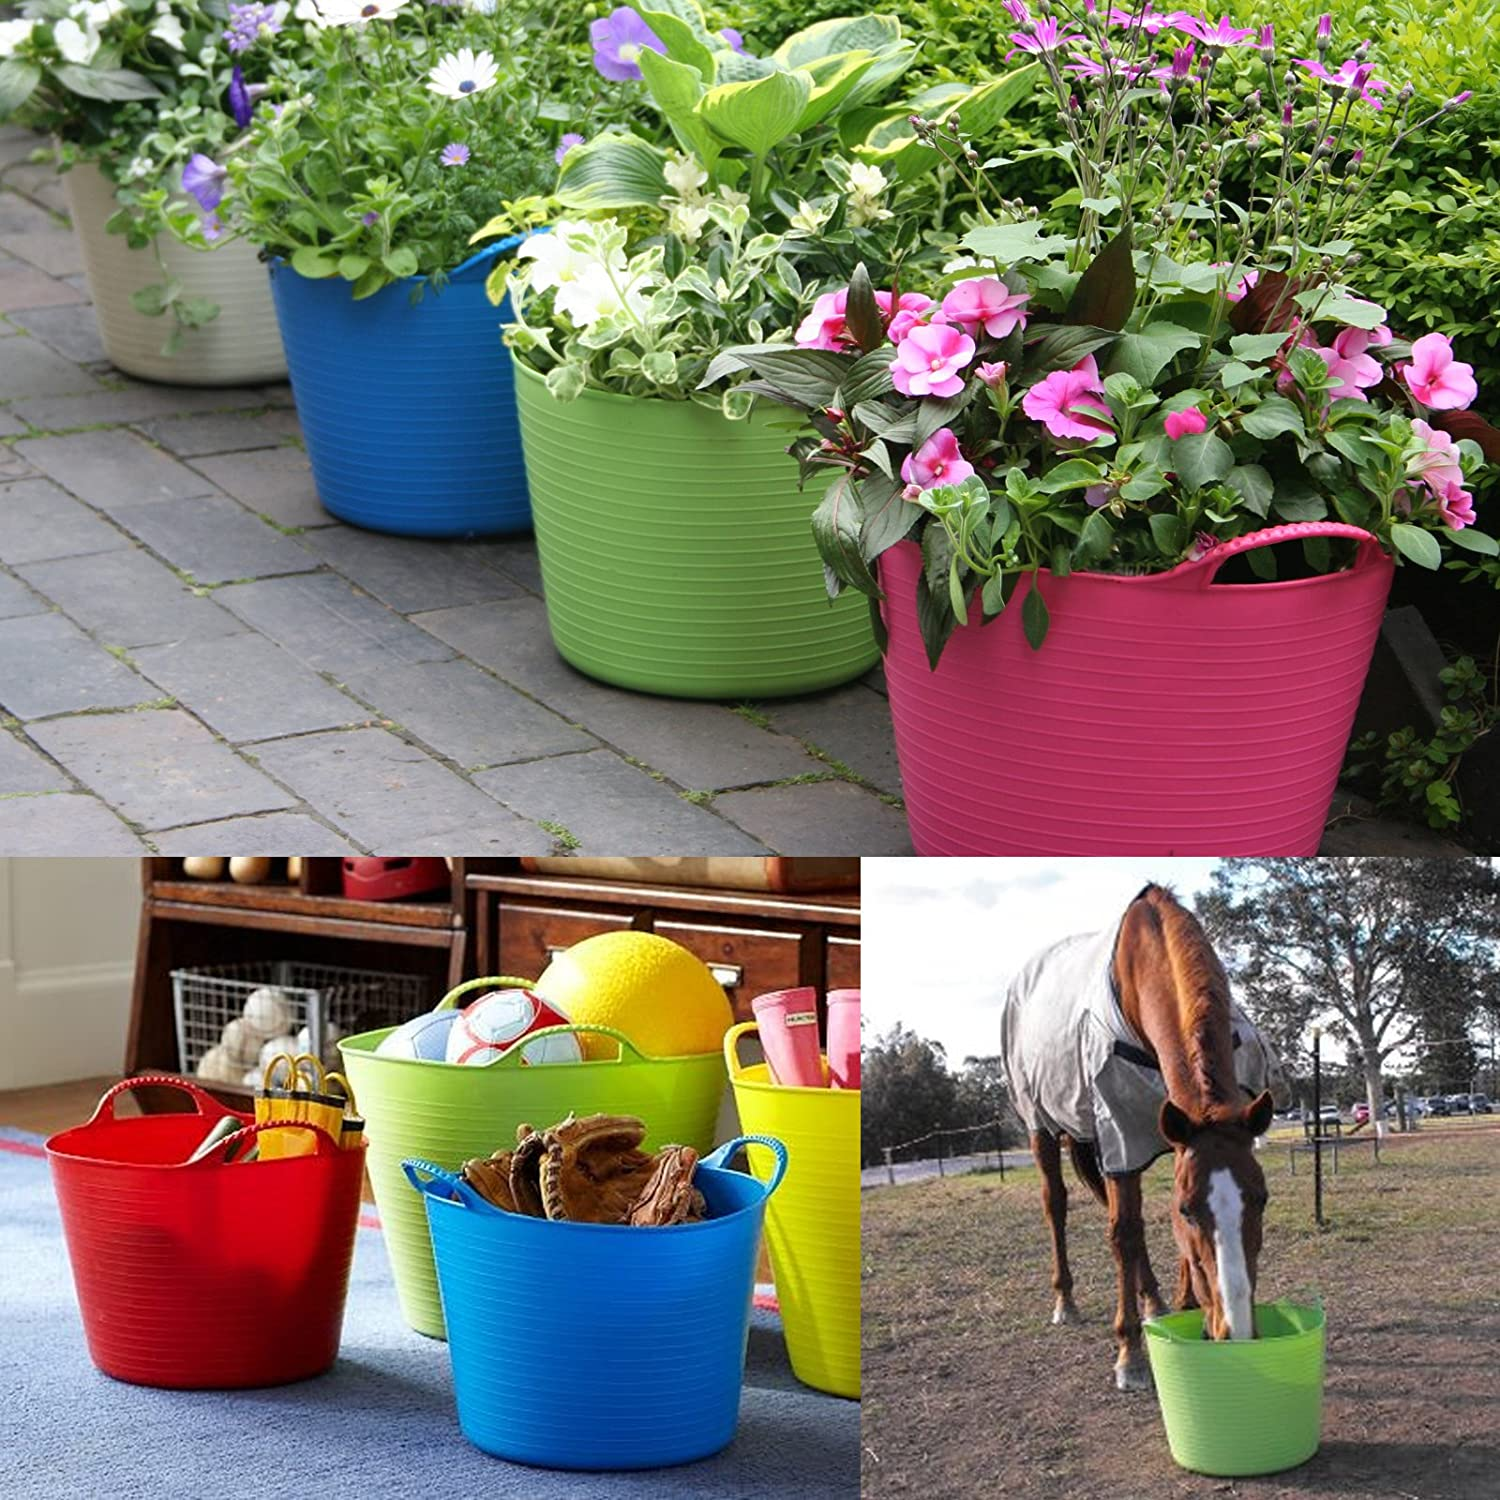 /& Tigerbox/® Antibacterial Pen Small Orange Flexible Strong Red Gorilla/® Storage Bucket Baskets ALL COLOURS AND SIZES